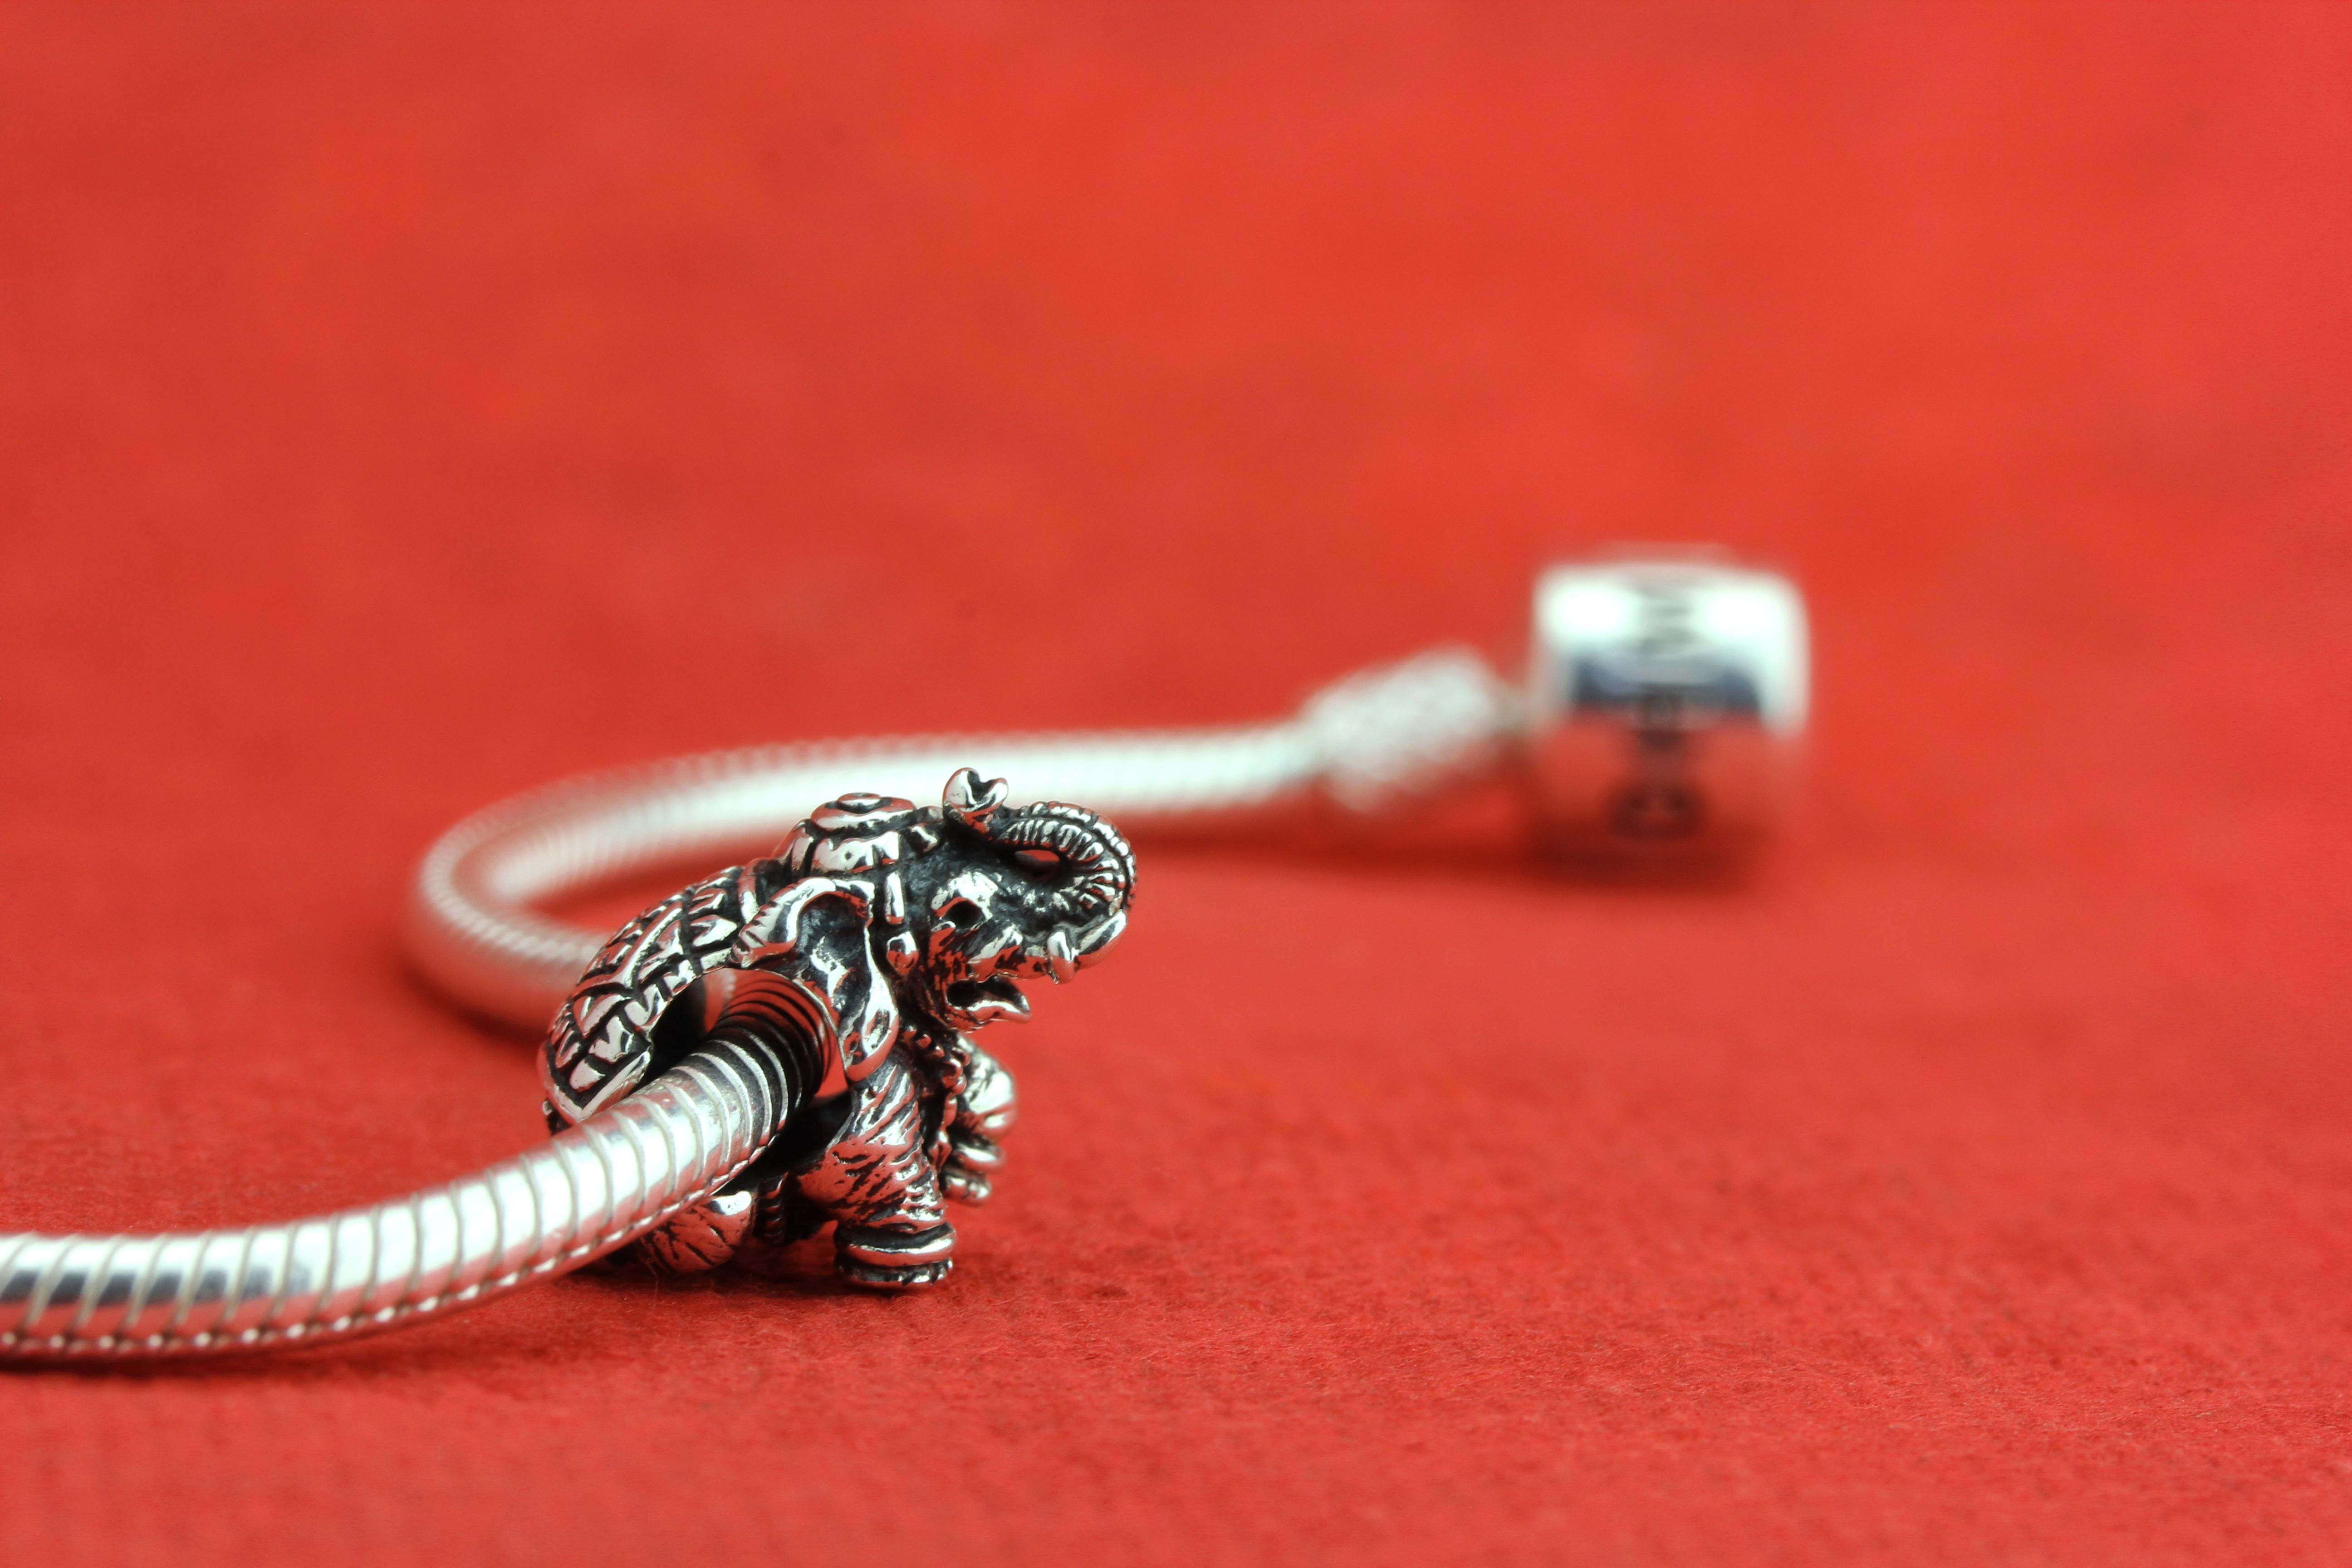 ROYAL ELEPHANT - Part of the OHMazing Thailand collection from OHM ...